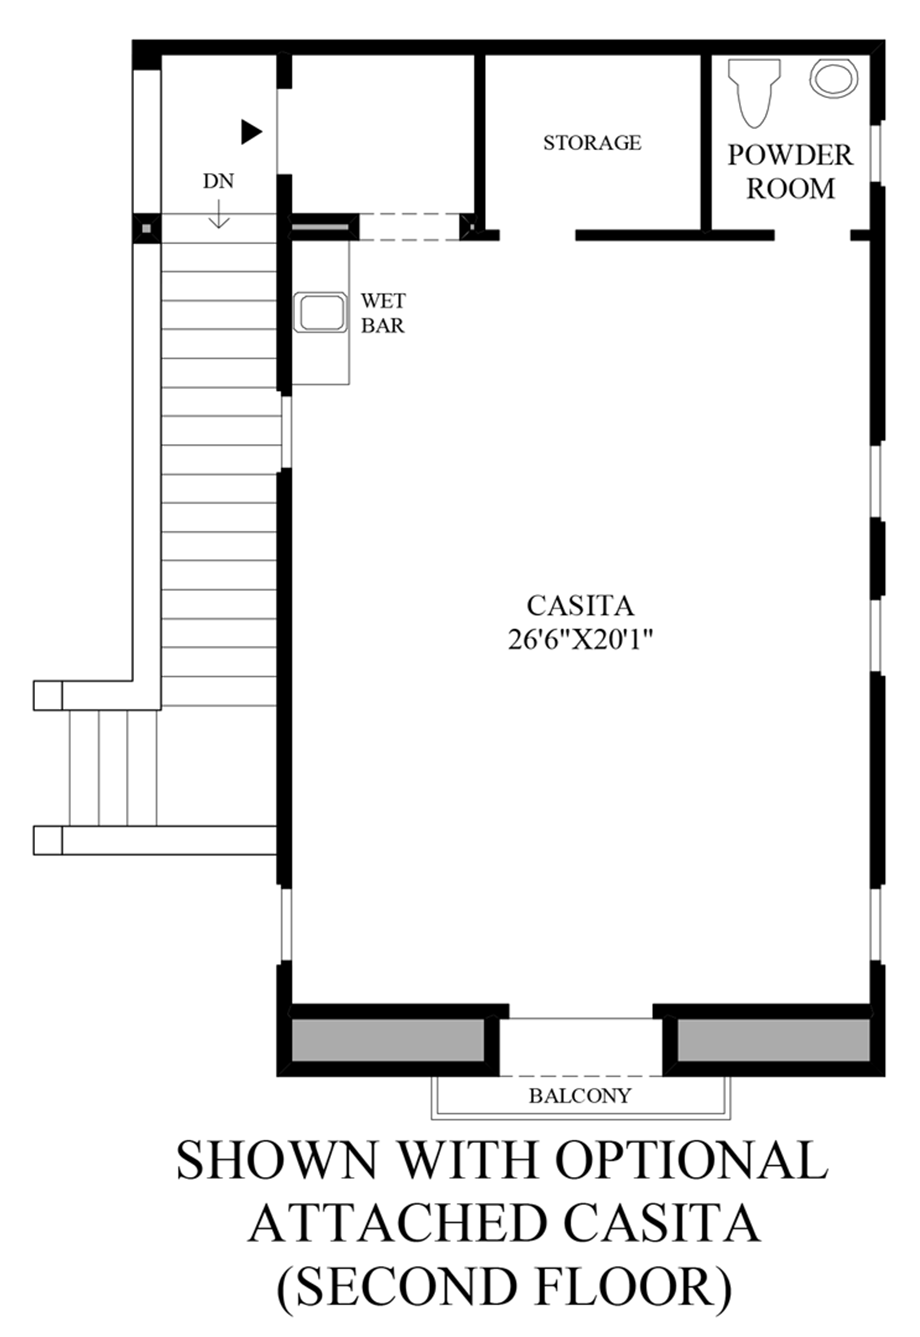 Optional Attached Casita (2nd Floor) Floor Plan